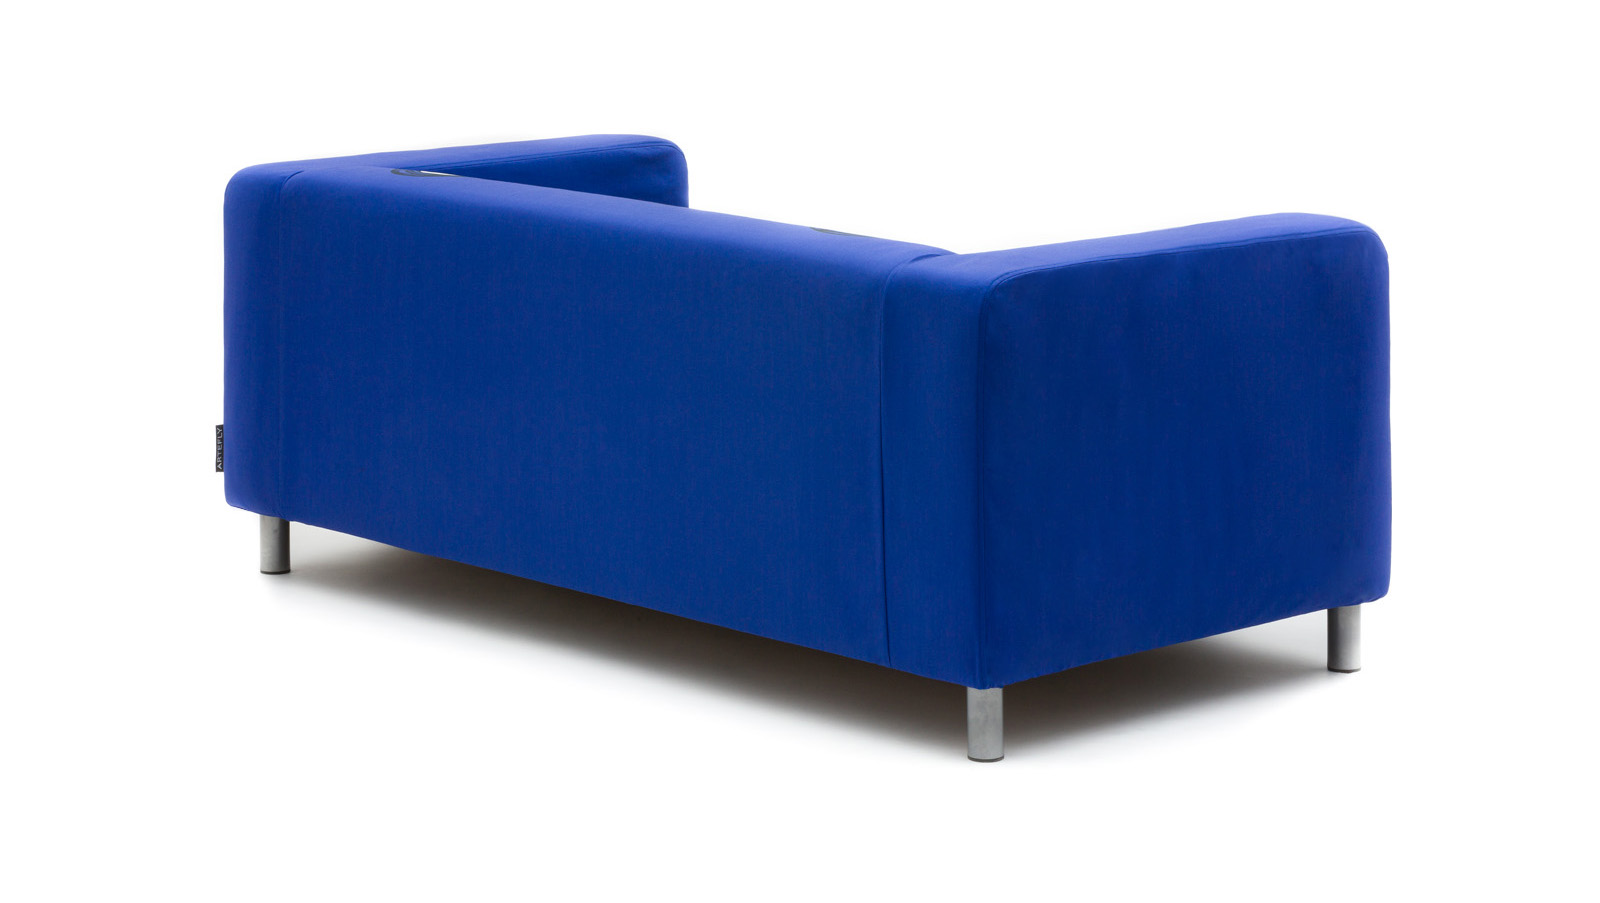 The Monster Ikea Klippan Sofa Cover Artefly Com